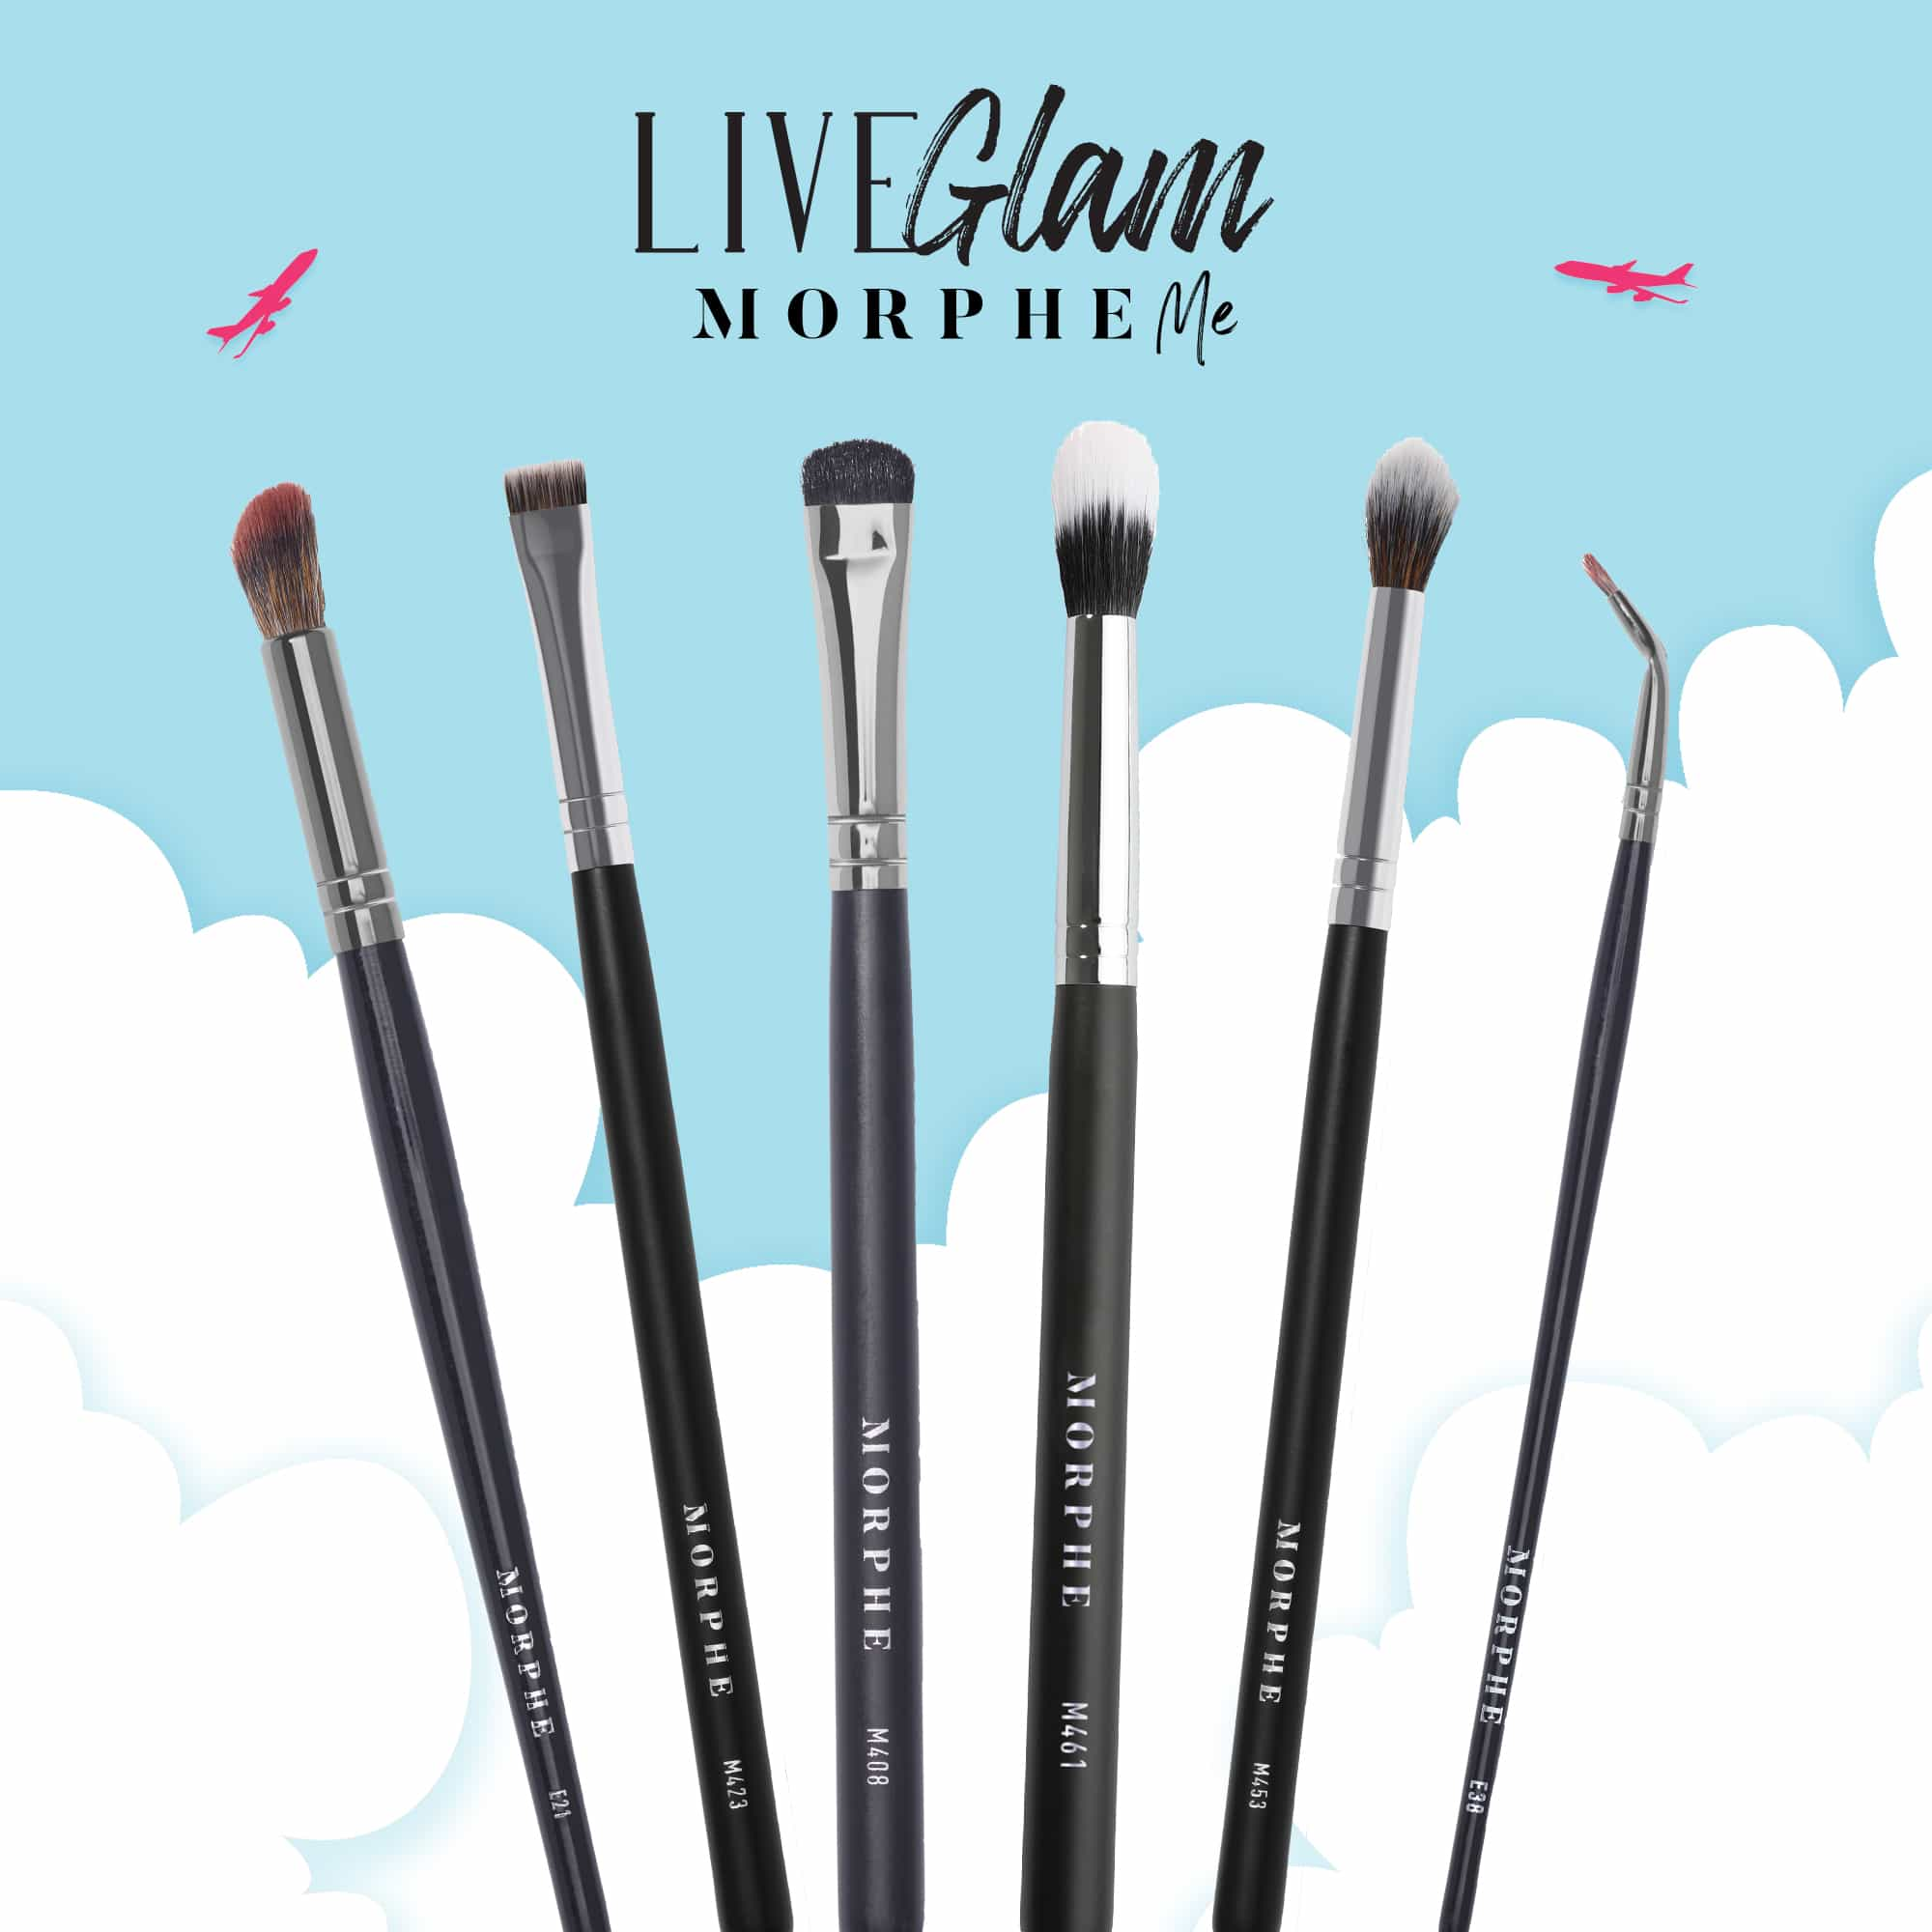 MorpheMe September 2019 Brush Club Full Spoilers + Coupon! - hello subscription